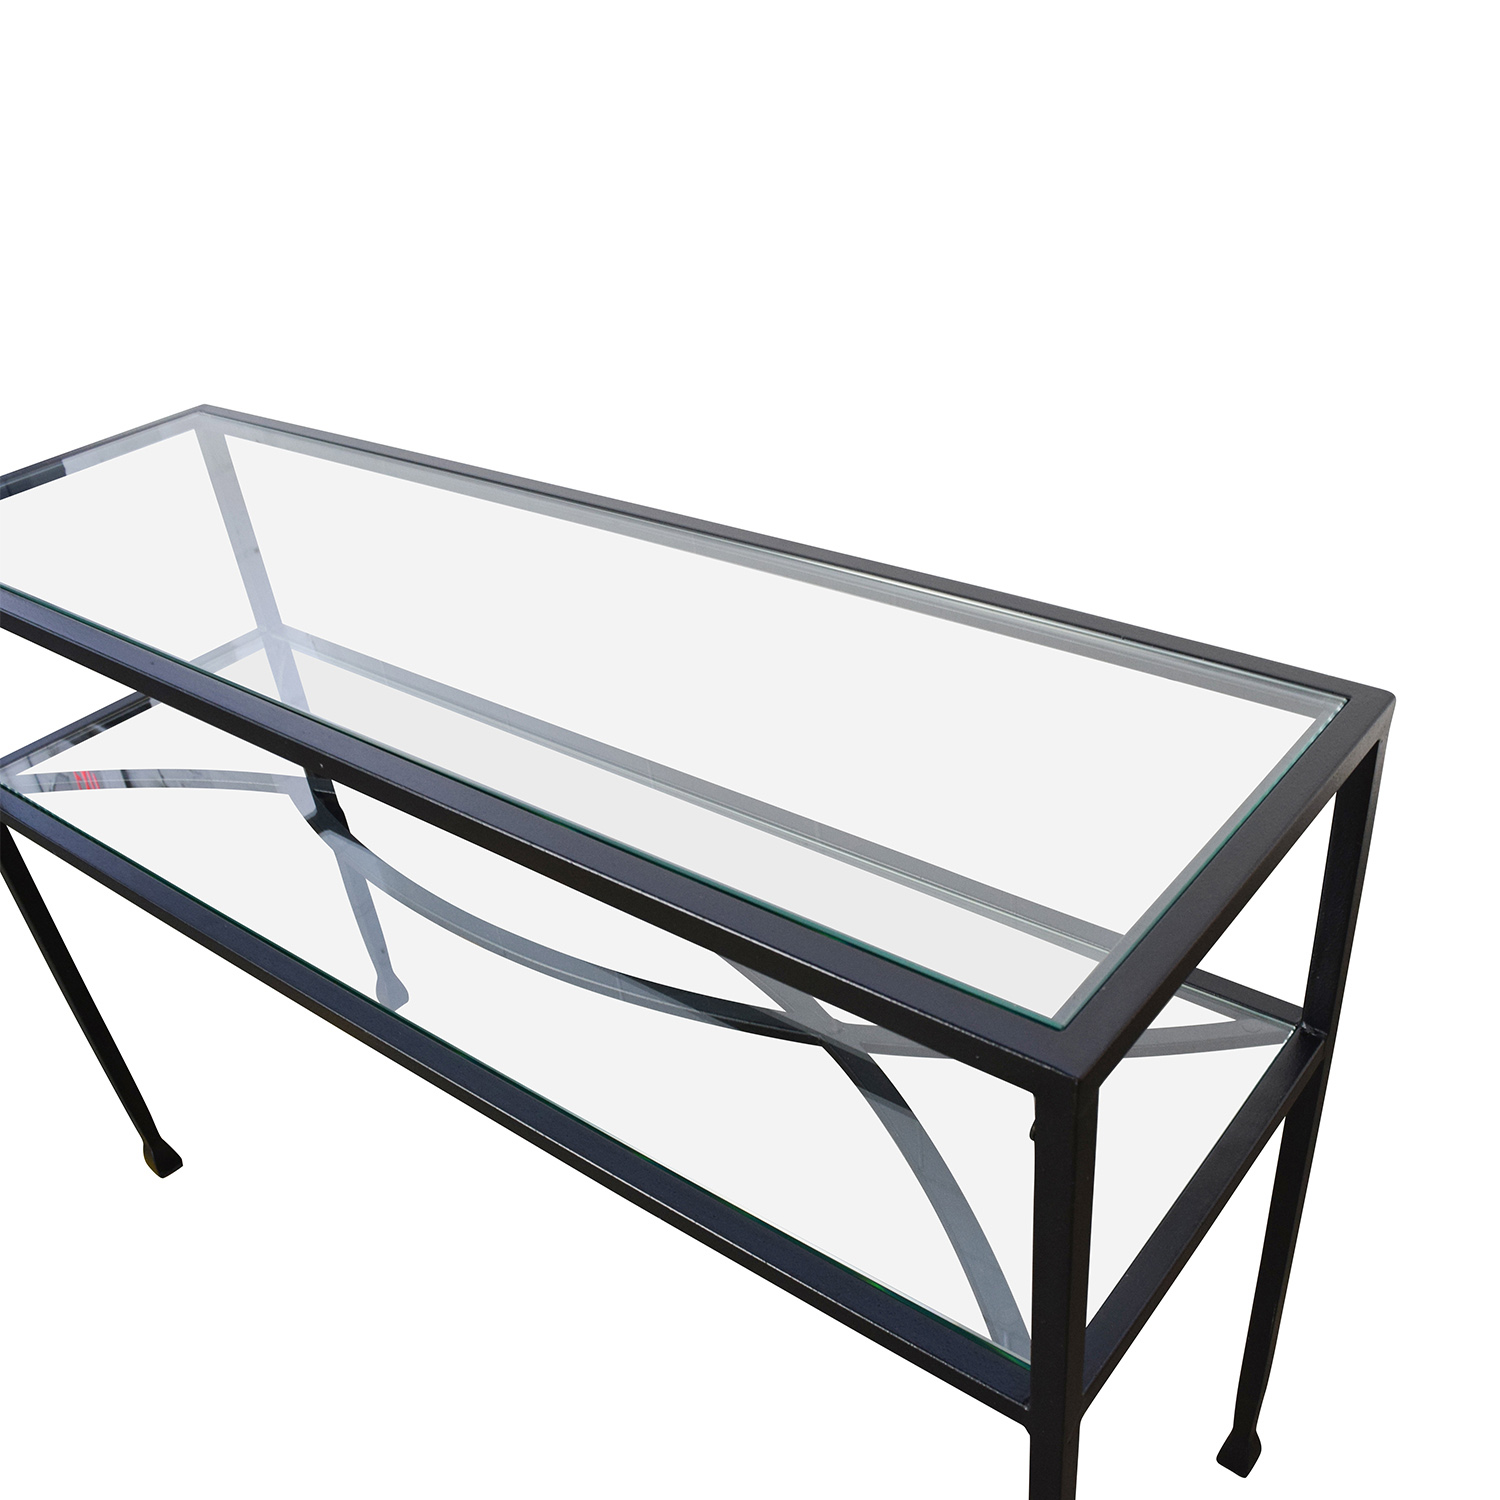 84 Off Pier 1 Pier 1 Glass Console Or Sofa Back Table